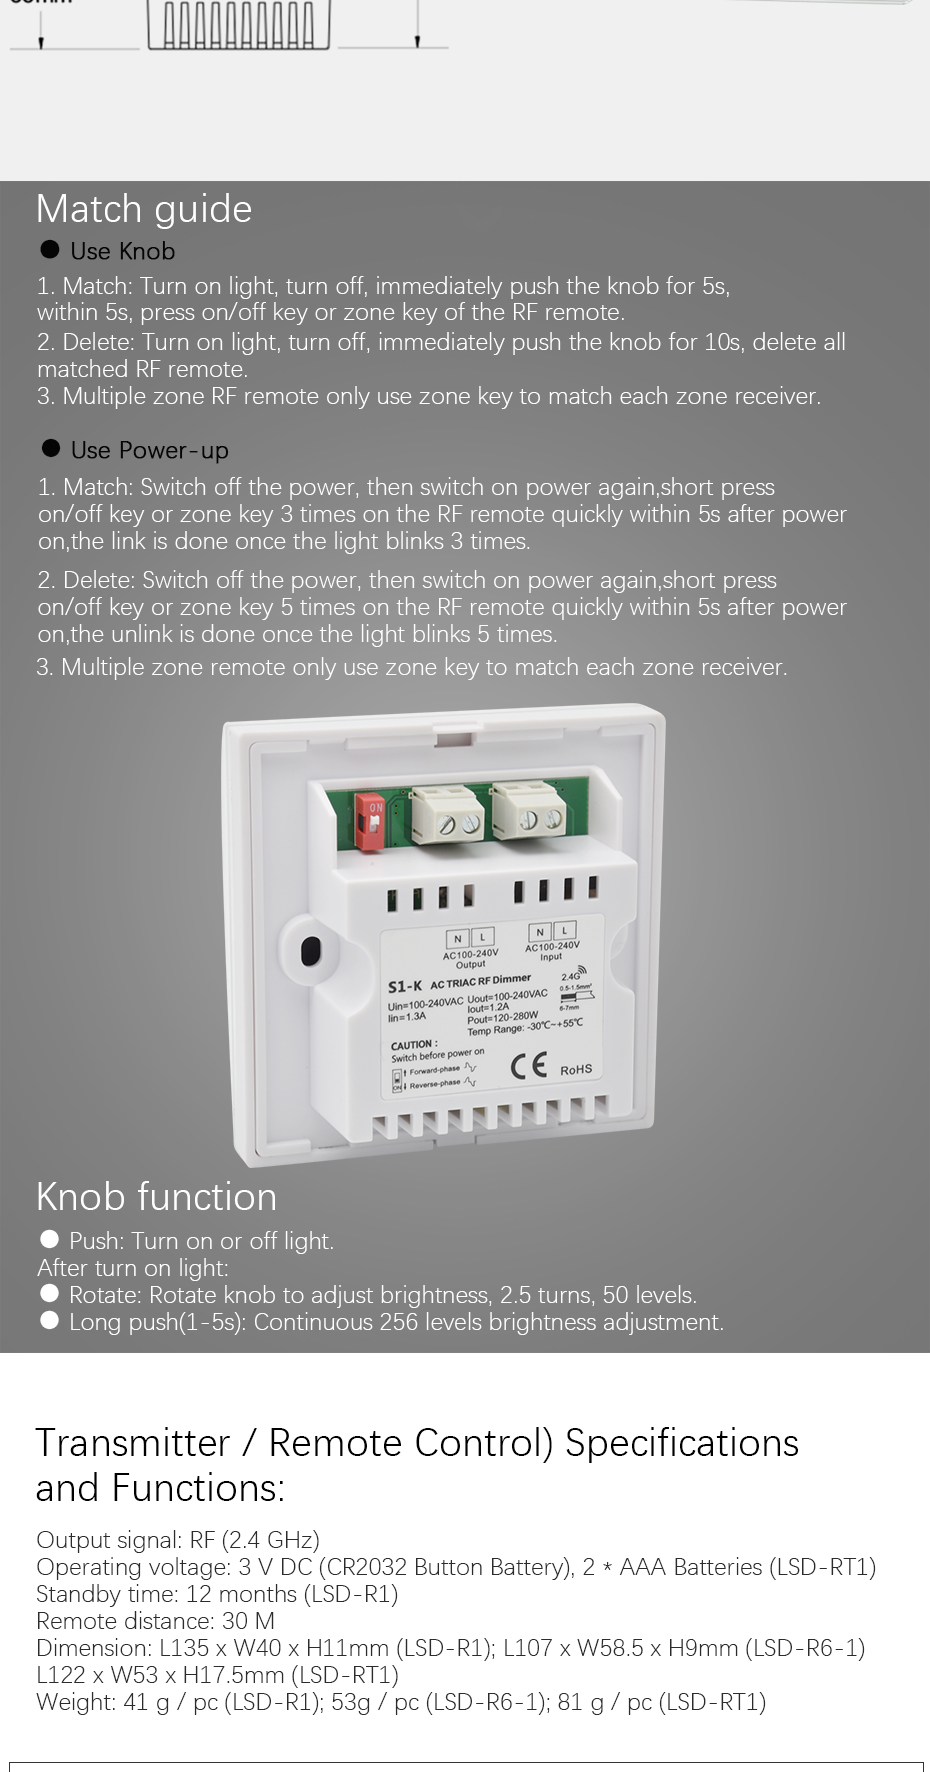 Ac Triac Led Dimmer 220v 110v Wireless Rf Rotary Glass Panel Dc Control For Triacs Multiple Zone Remote Only Use Key To Match Each Receiver